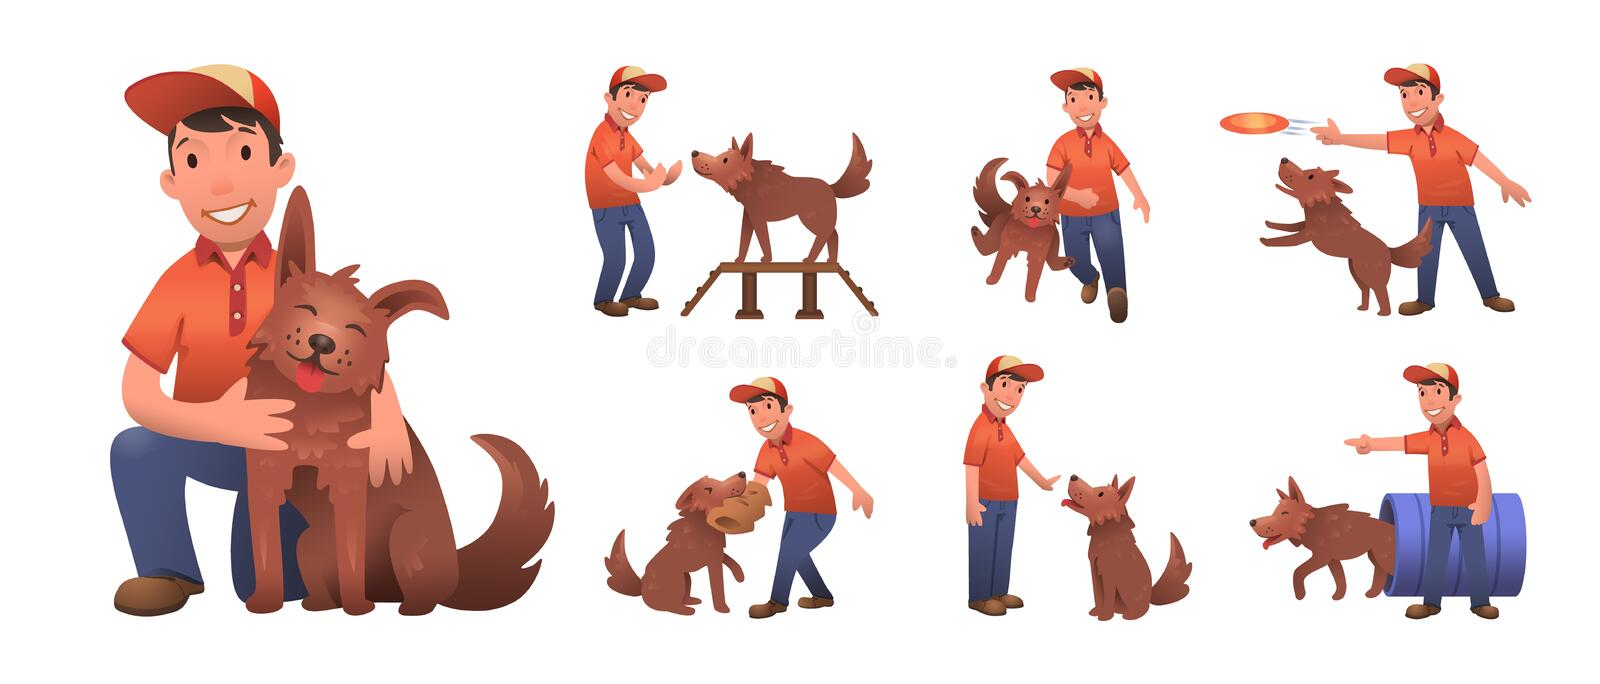 Happy smiling boy training his funny dog. Boy and dog playing together. Set of flat cartoon characters. Colored flat. Vector illustration. Isolated on white vector illustration